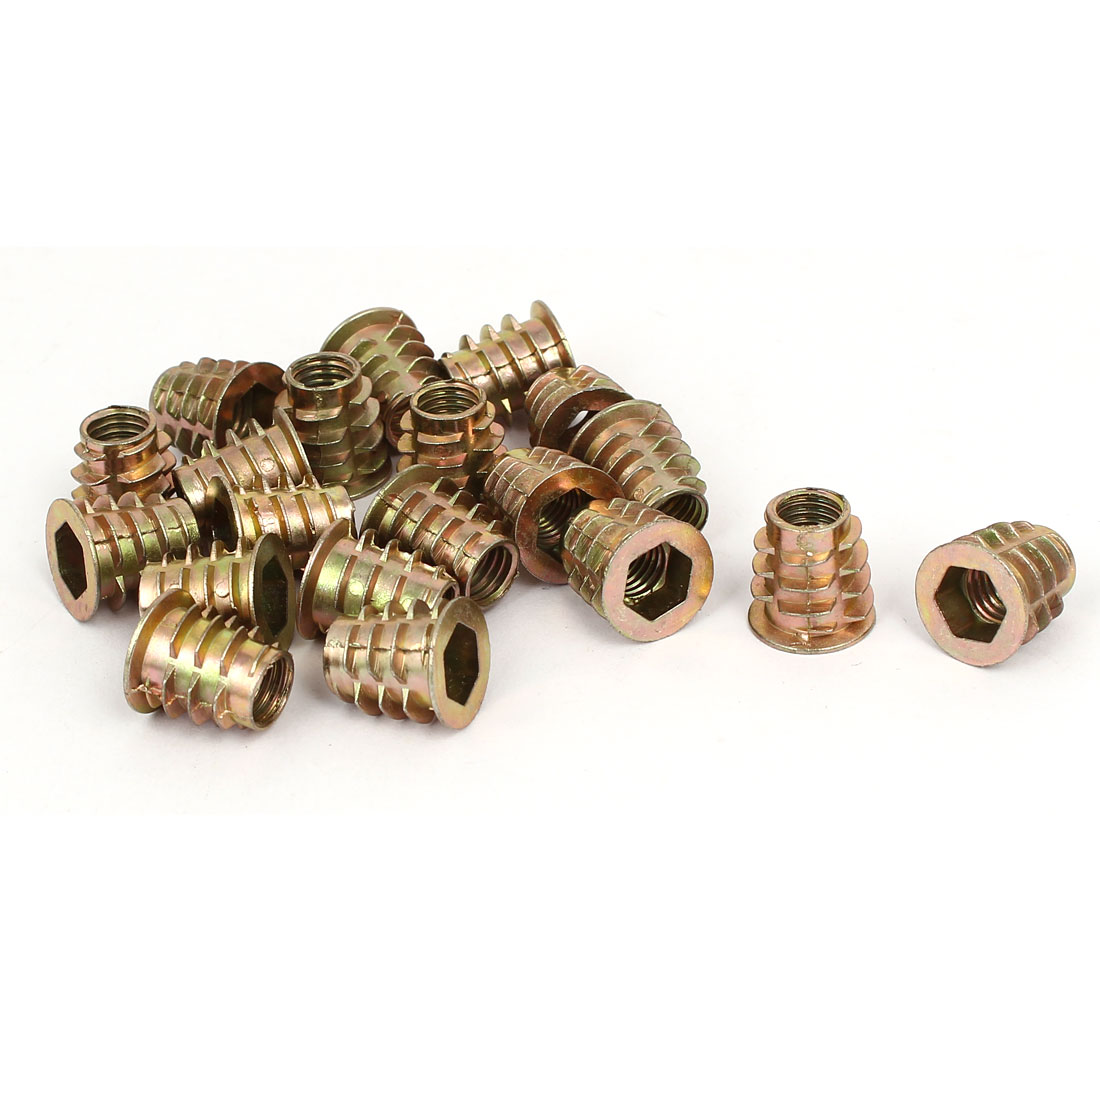 M8 x 15mm Hex Socket Head Insert Screws E-Nuts Furniture Fittings 20pcs